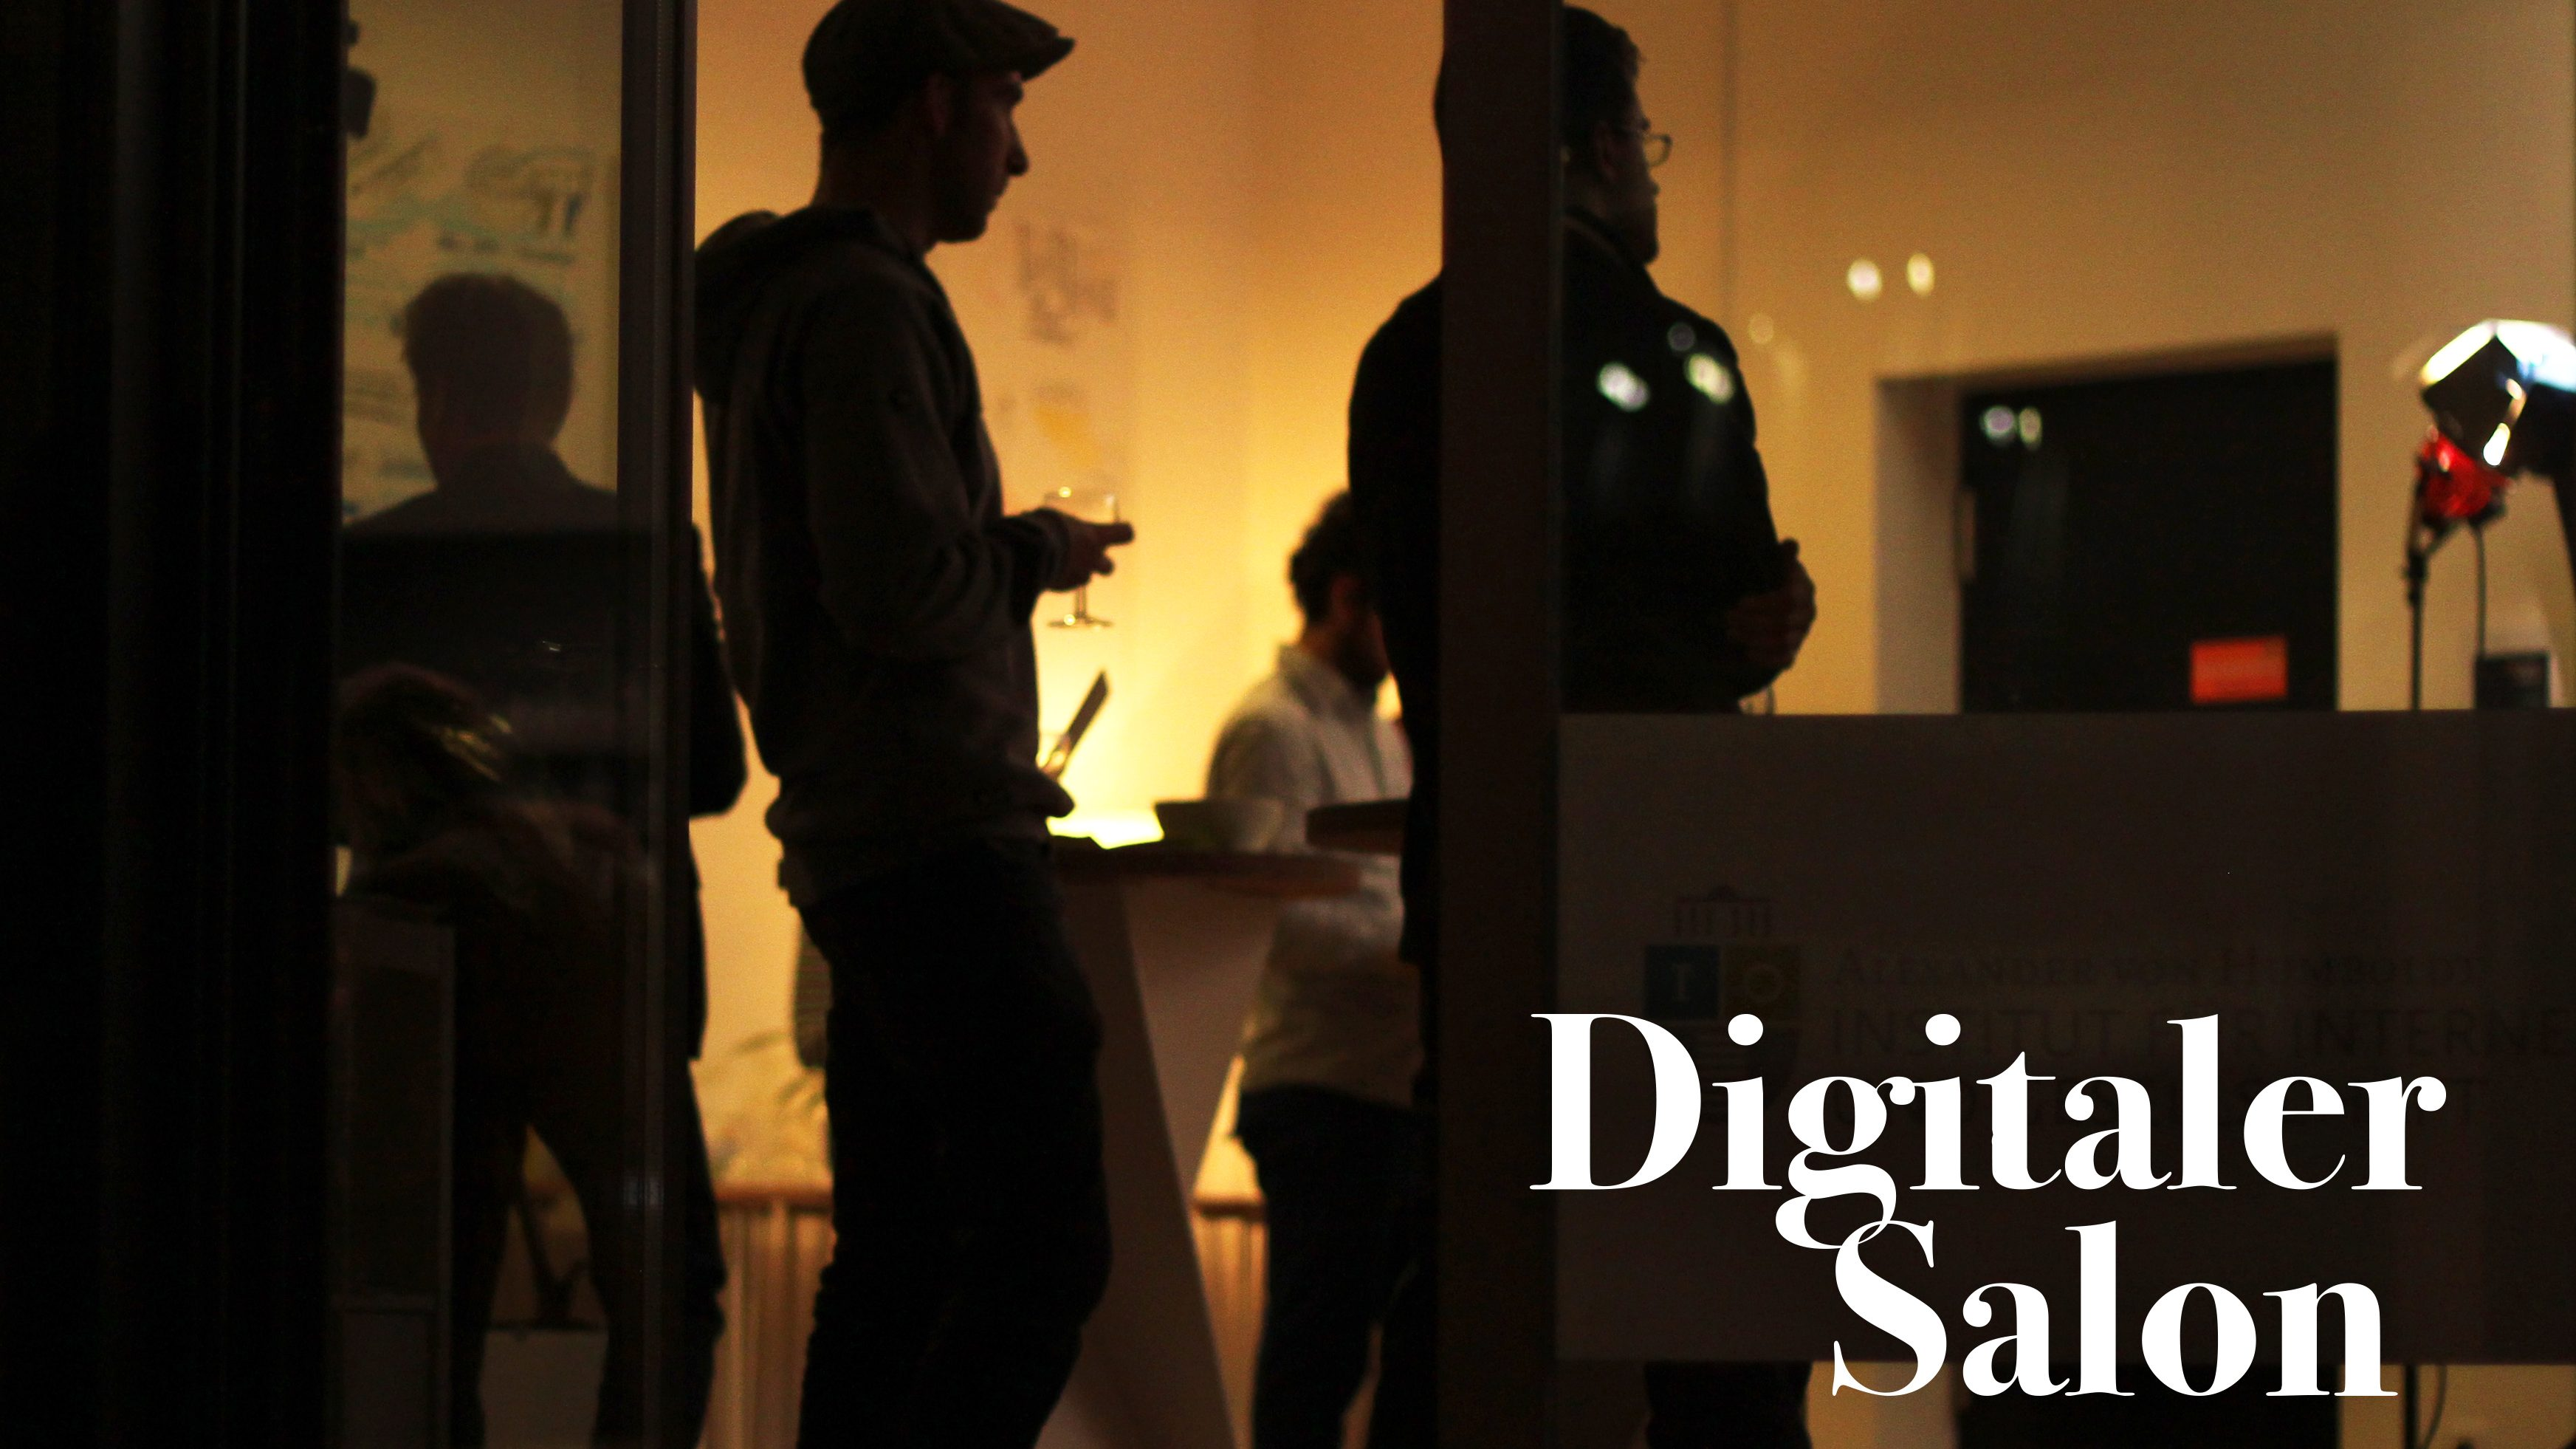 Digitaler Salon Mood-Pic